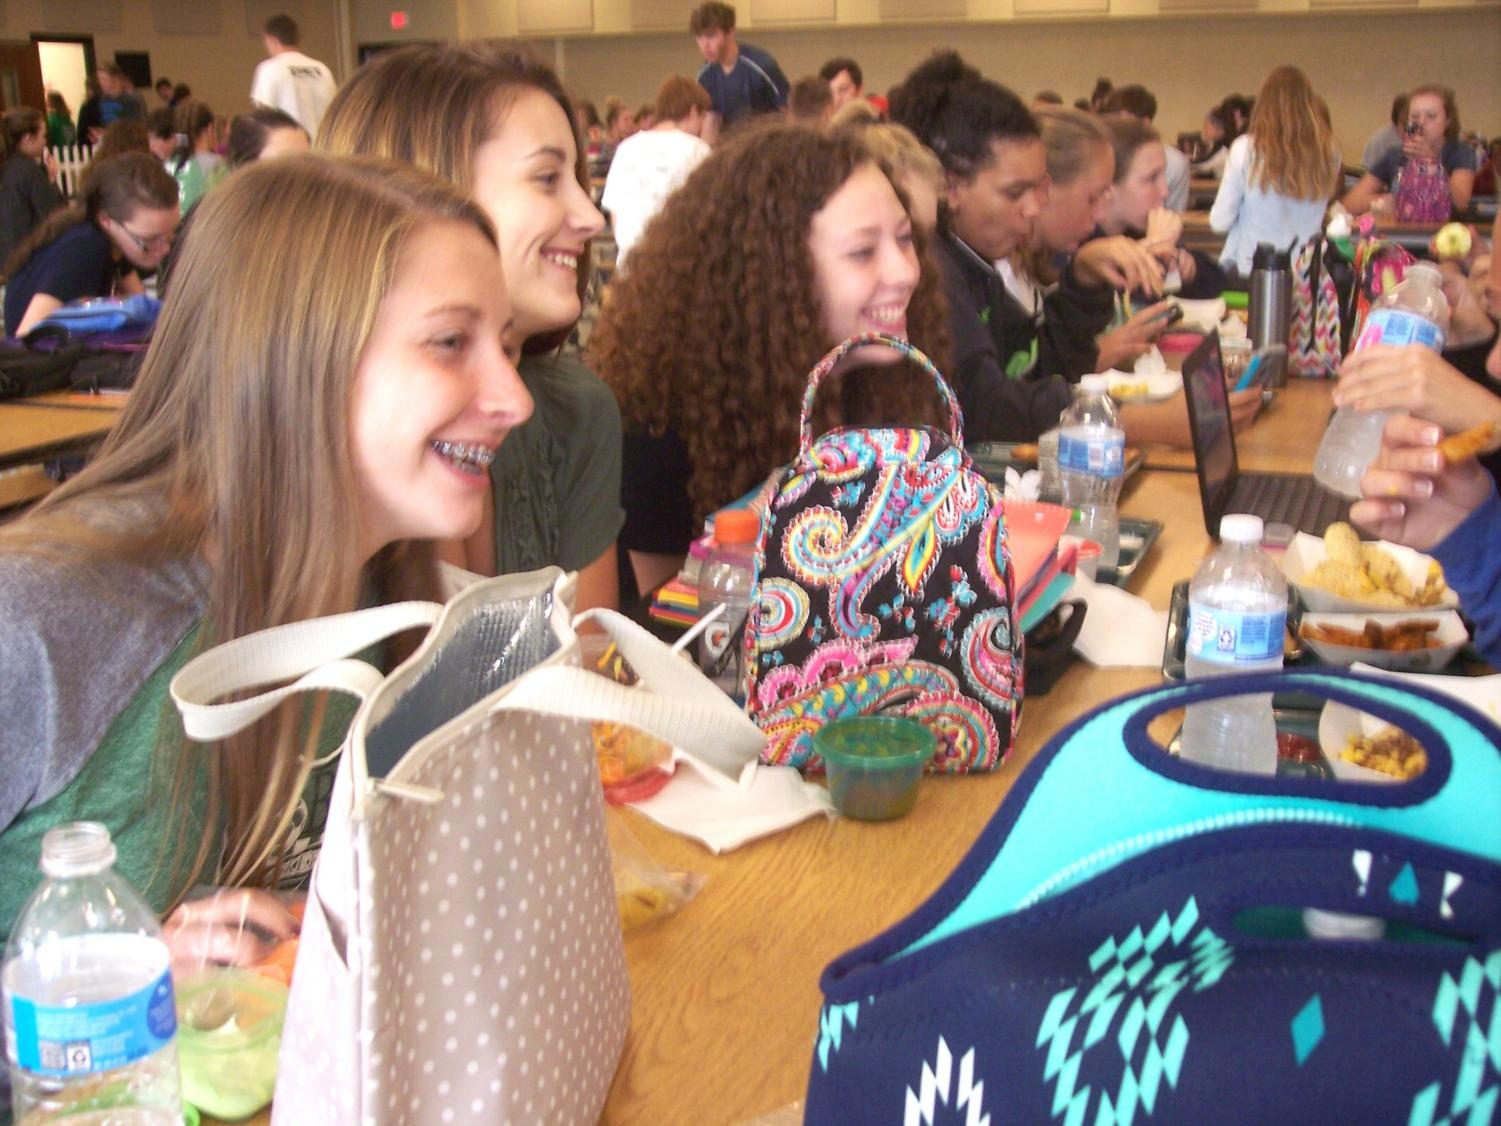 Ashley Dukehart (9), Julia Trei (9), and Brynn Taulton (9) smile as they share a funny moment with their friends.